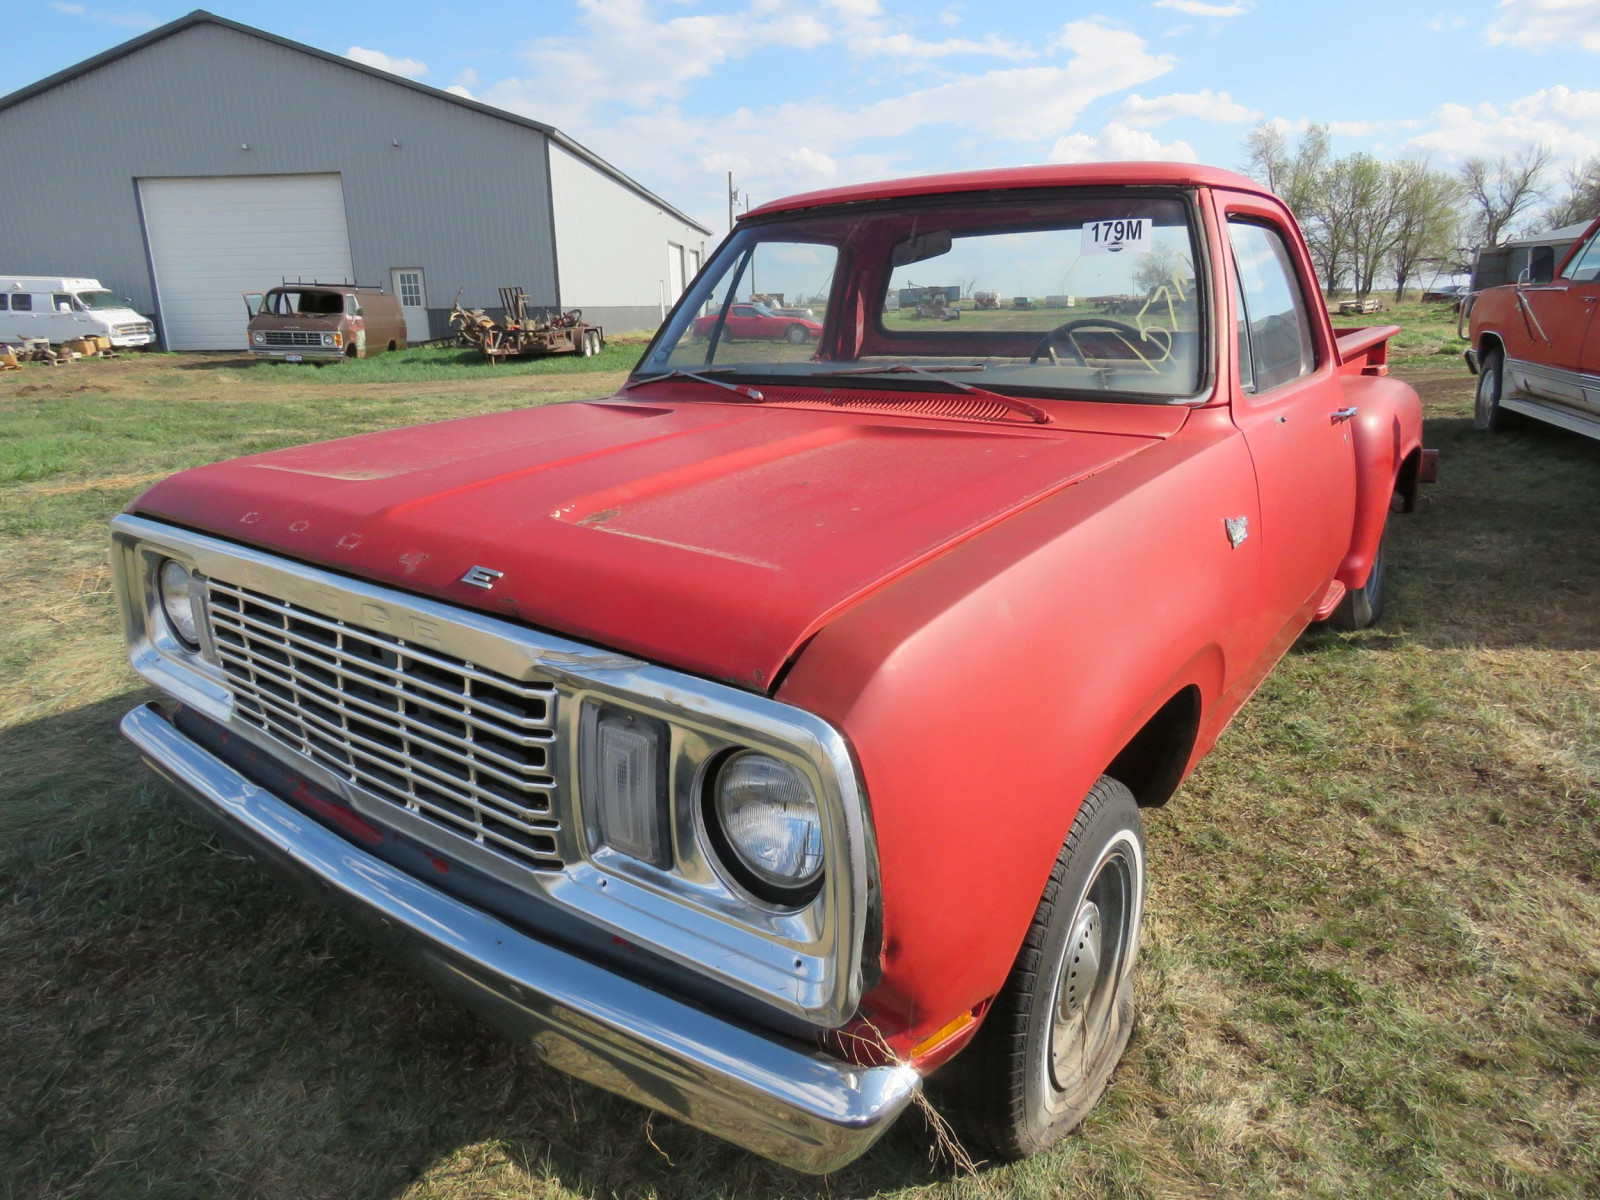 1975 Dodge D100 Pickup - Image 1